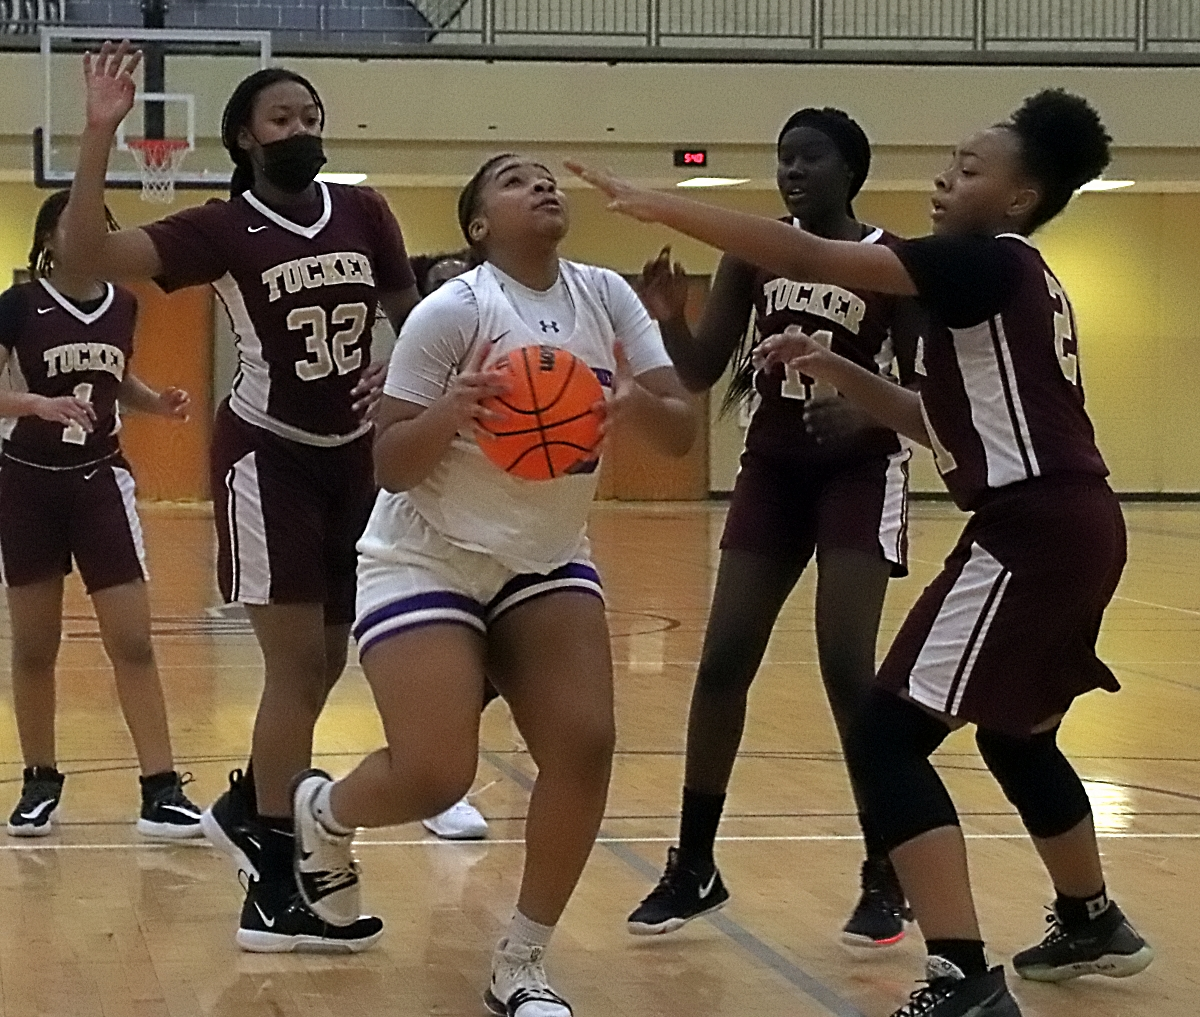 Miller Grove's Jalina Robinson gets in the lane against Tucker defenders Jacinta Hollins (32), Ashoul Yak (11) and Kristan Simmons (21). Robinson keyed a fourth-quarter rally to lead Miller Grove to a 43-35 win. (Photo by Mark Brock)